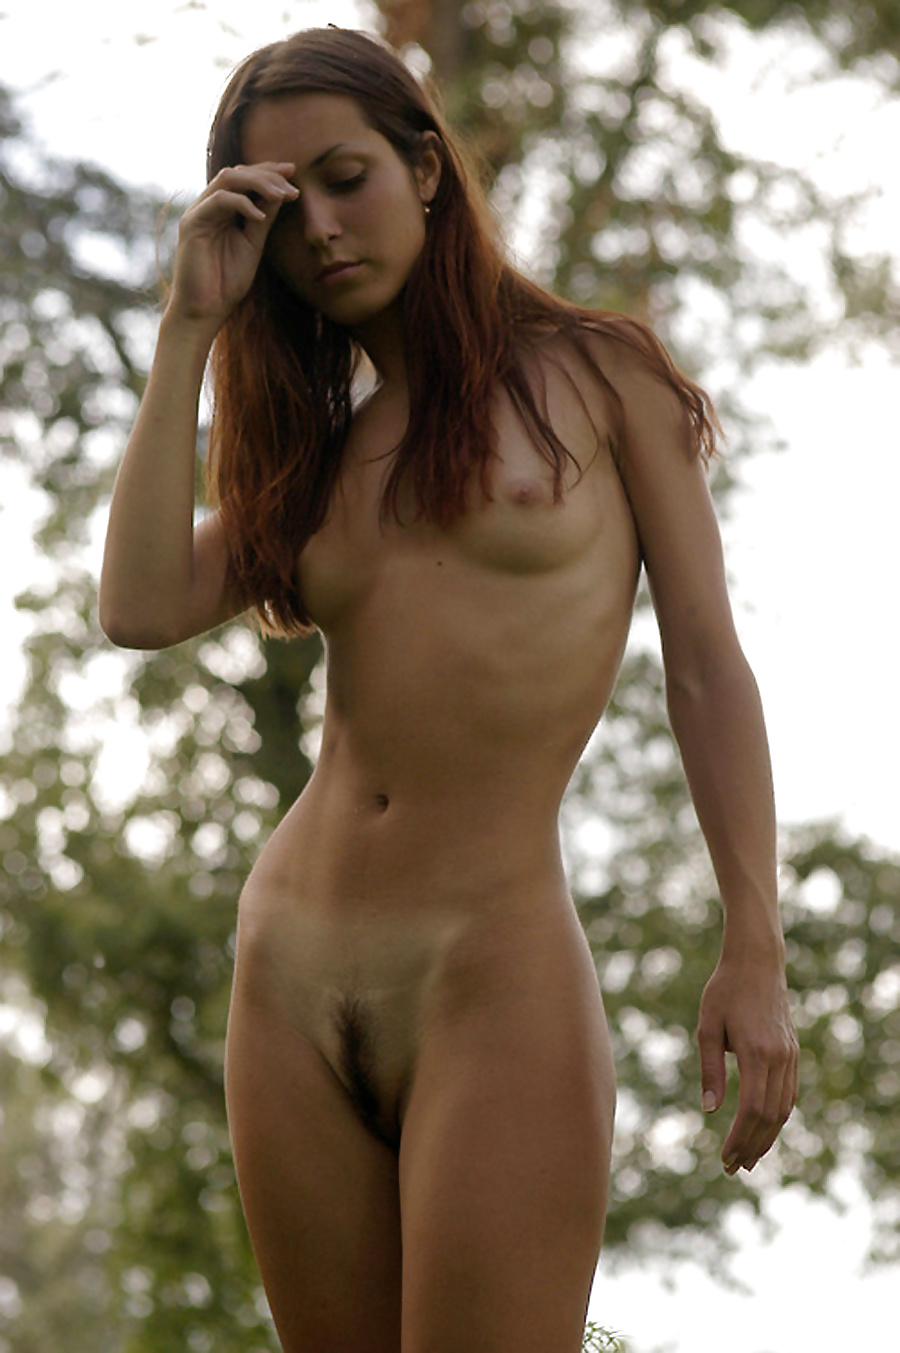 Teen nymph nude — photo 4